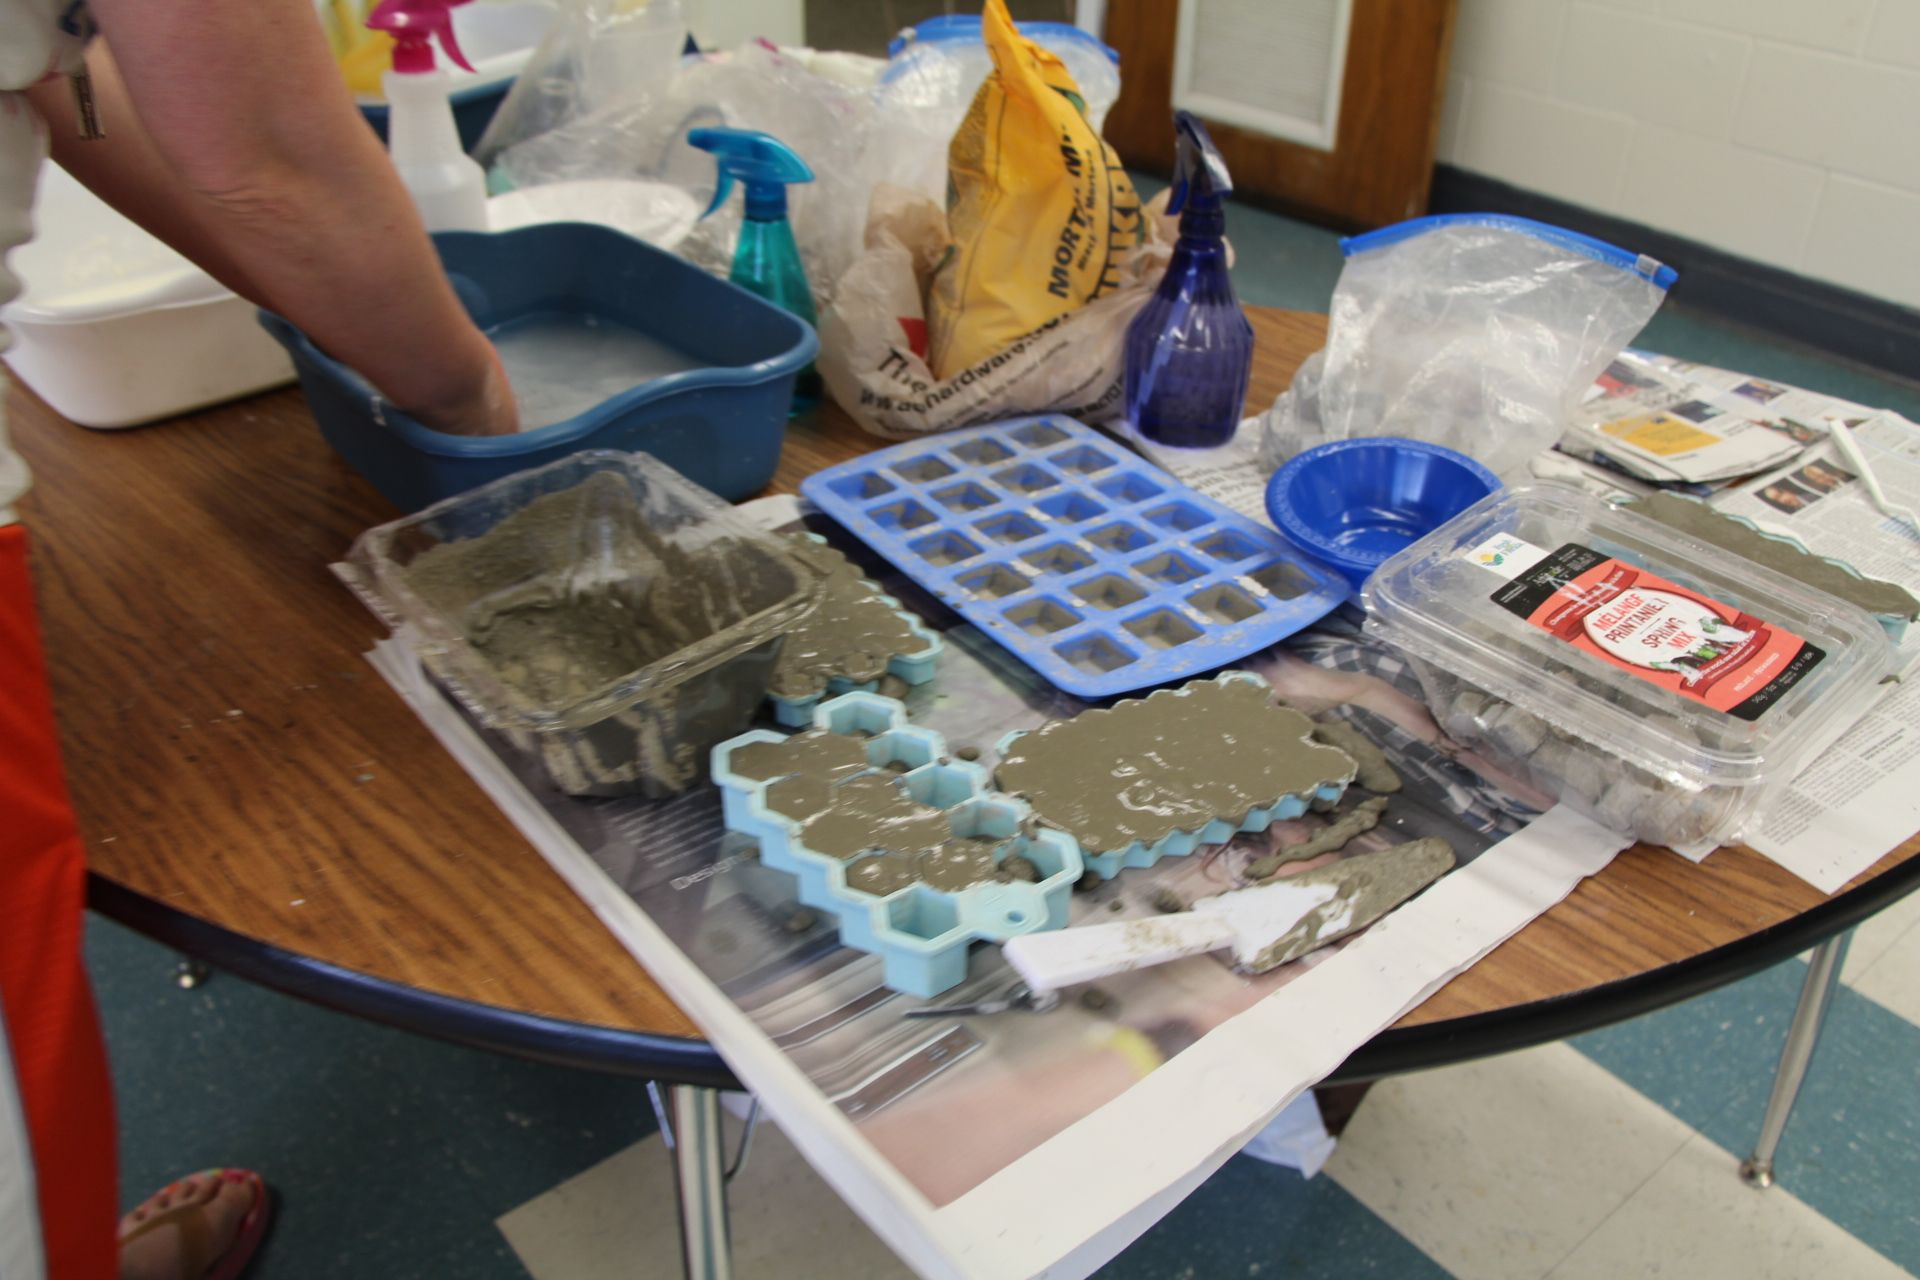 You can buy pre-made mini bricks for students to build structures with but they are expensive. I cam up with the idea of using Quik Crete and silicon ice cube trays. Mix up the cement and pour into the trays. When dry, pop the bricks out. I asked teachers to invent their own mortar by using sand, cornstarch, water and glue. Check out more STEM teacher training investigation here: http://www.drdianateachertraining.com #shoestringSTEM #STEM #k12 #teaching #classroom #studentdriven